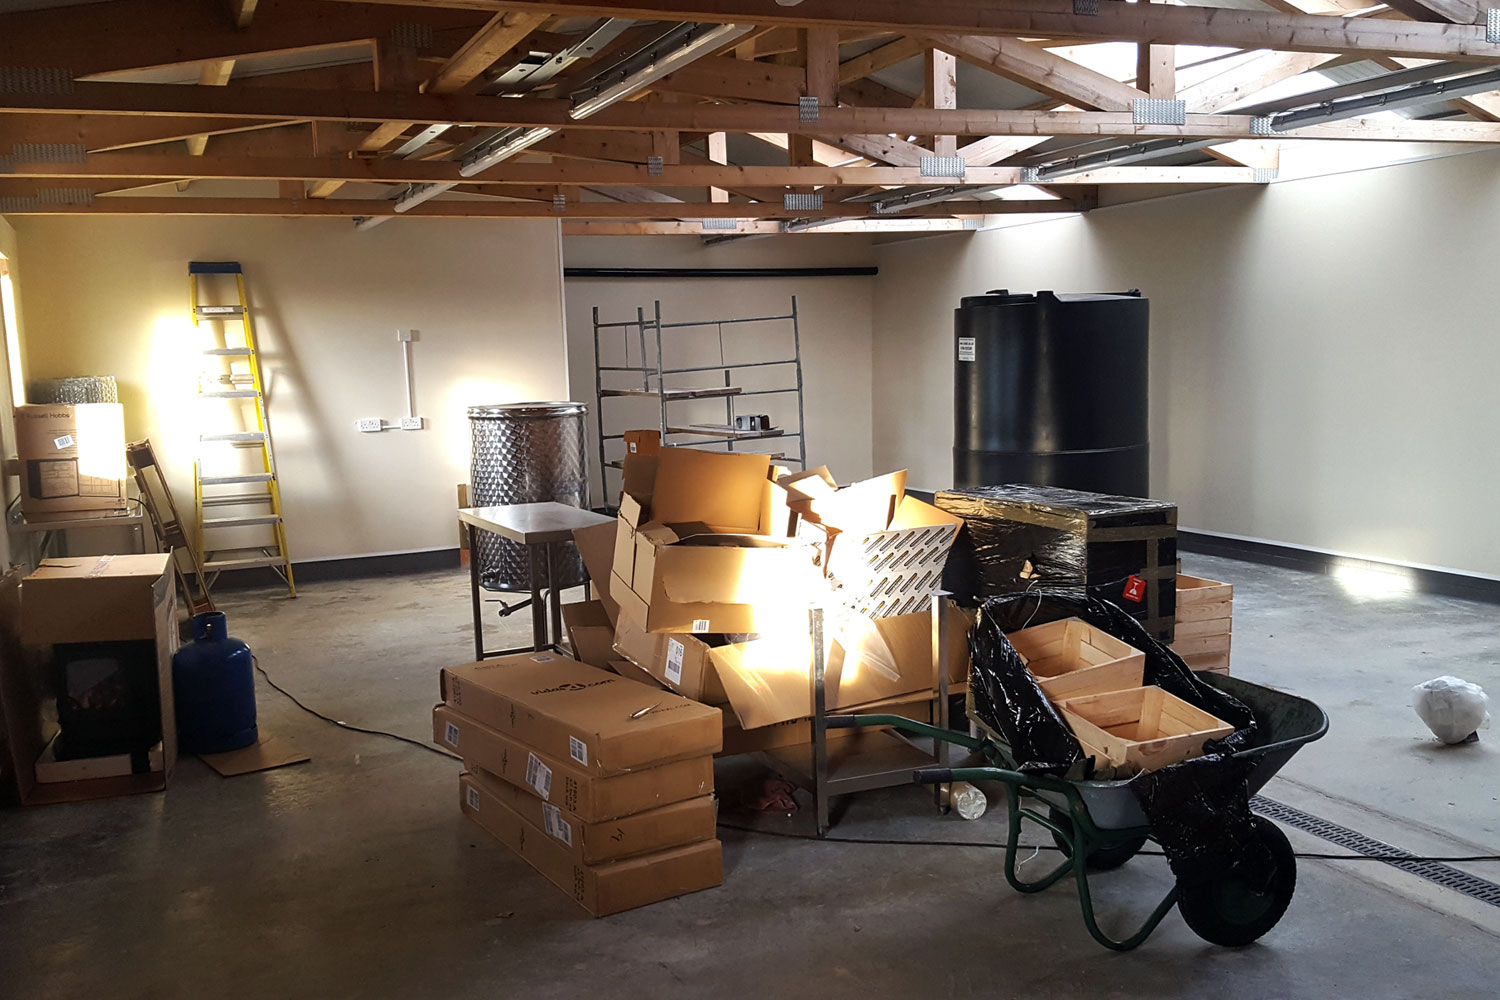 Starting to move equipment onto the distillery floor.